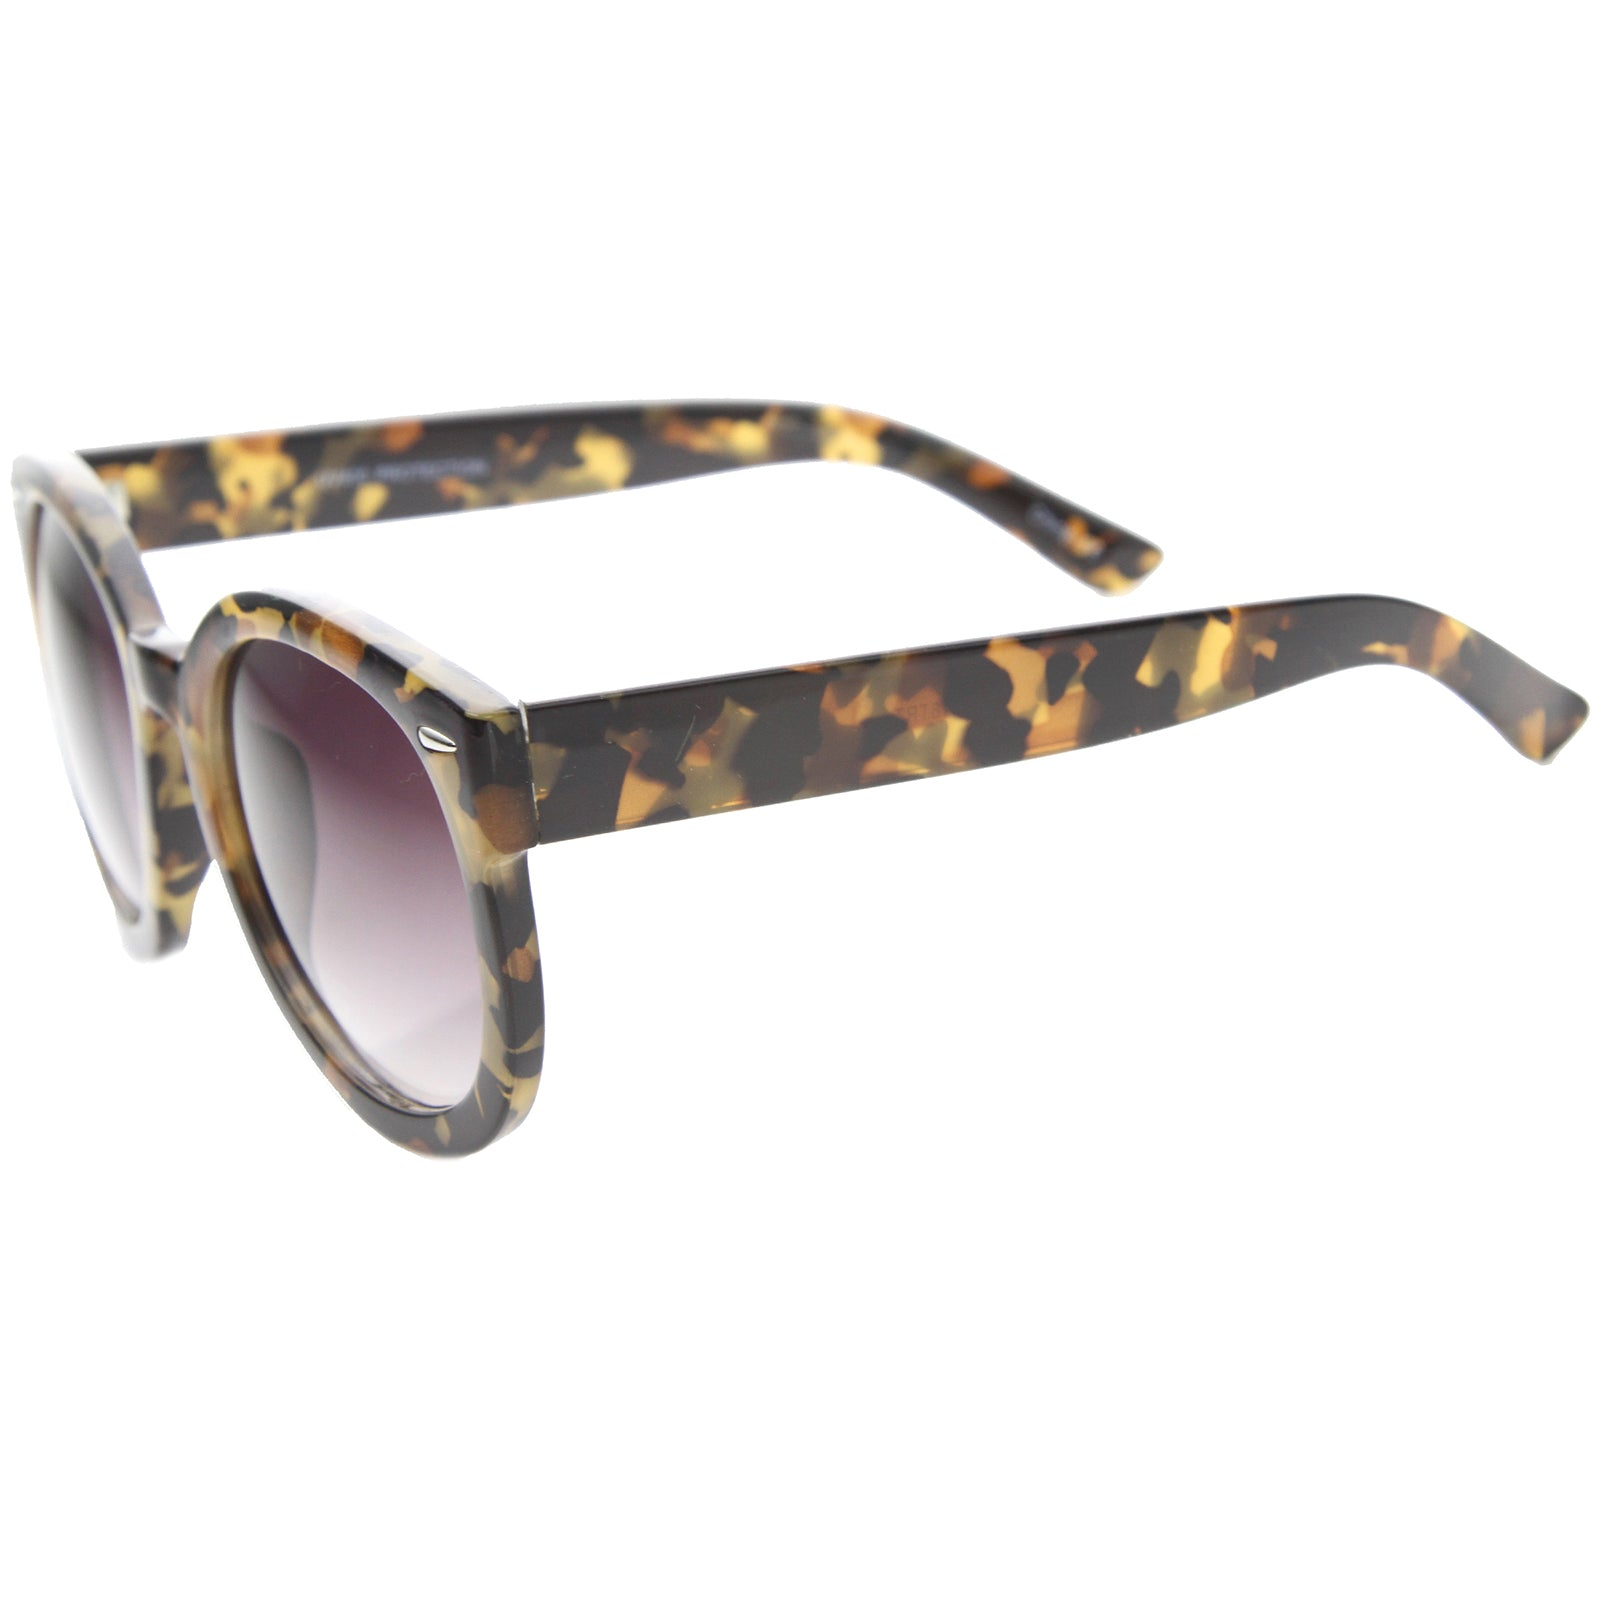 Womens Oversized Sunglasses With UV400 Protected Composite Lens - sunglass.la - 7